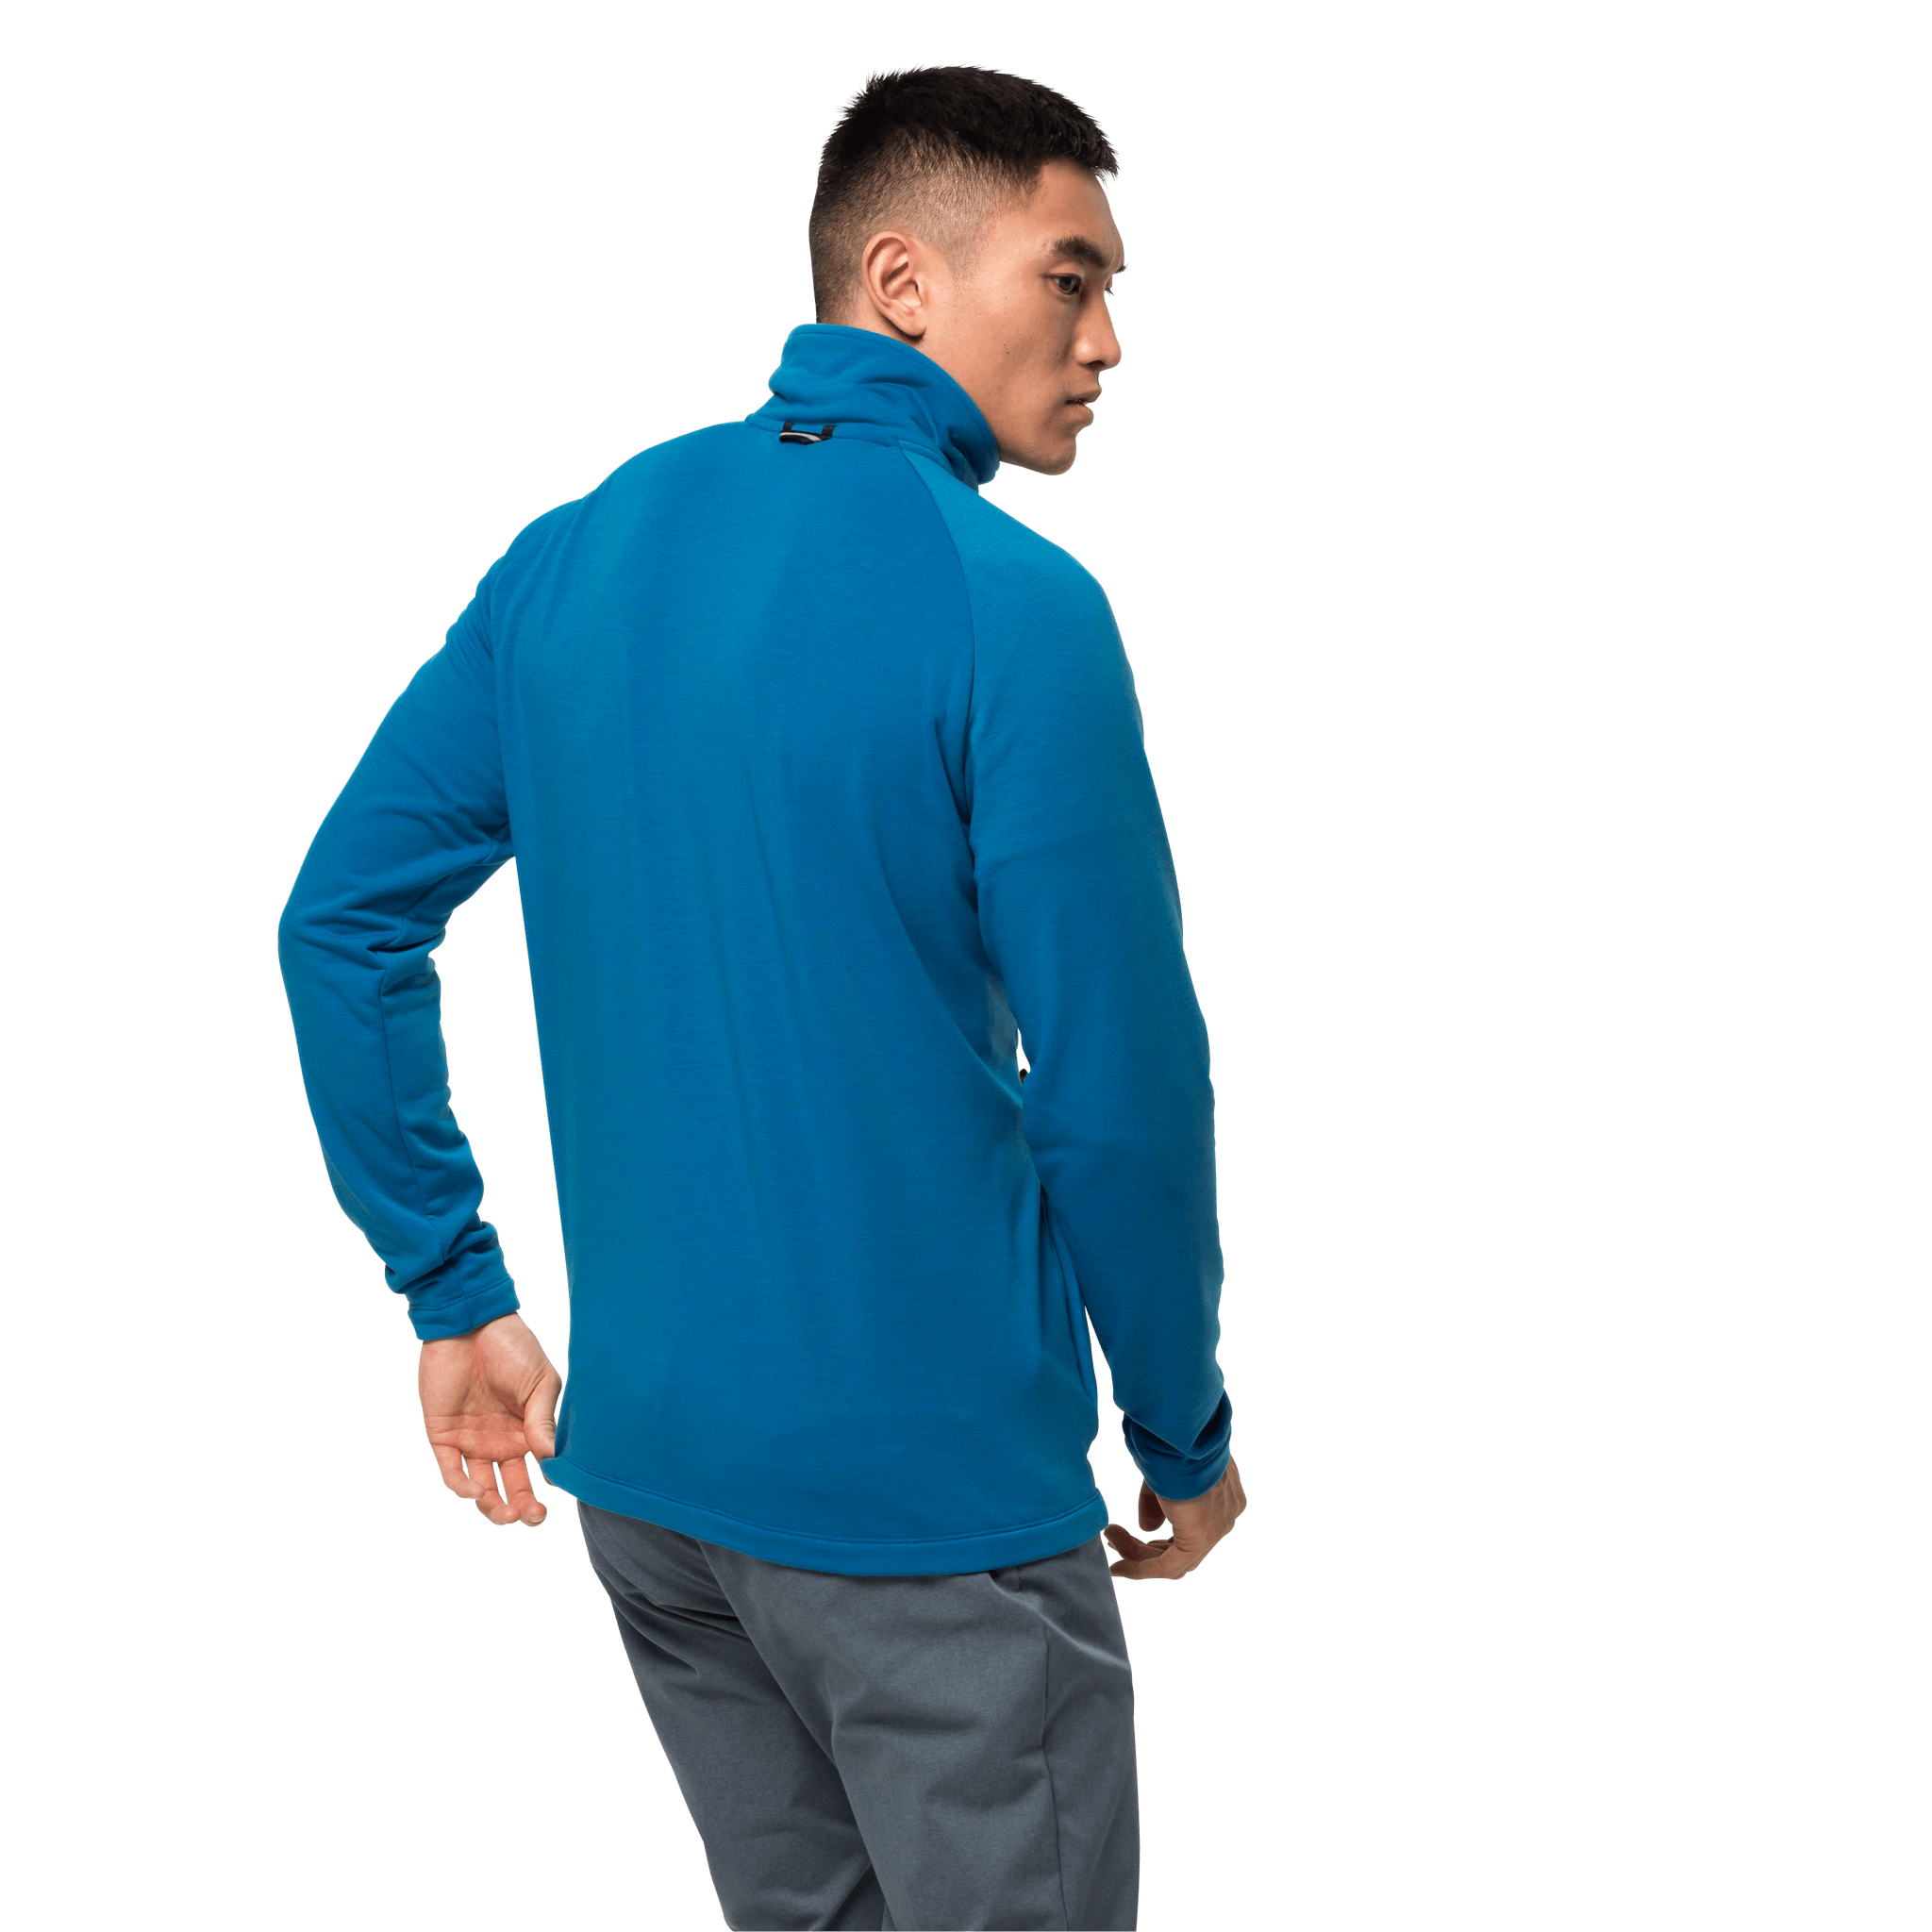 Blue Pacific Ultralight Packable Fleece